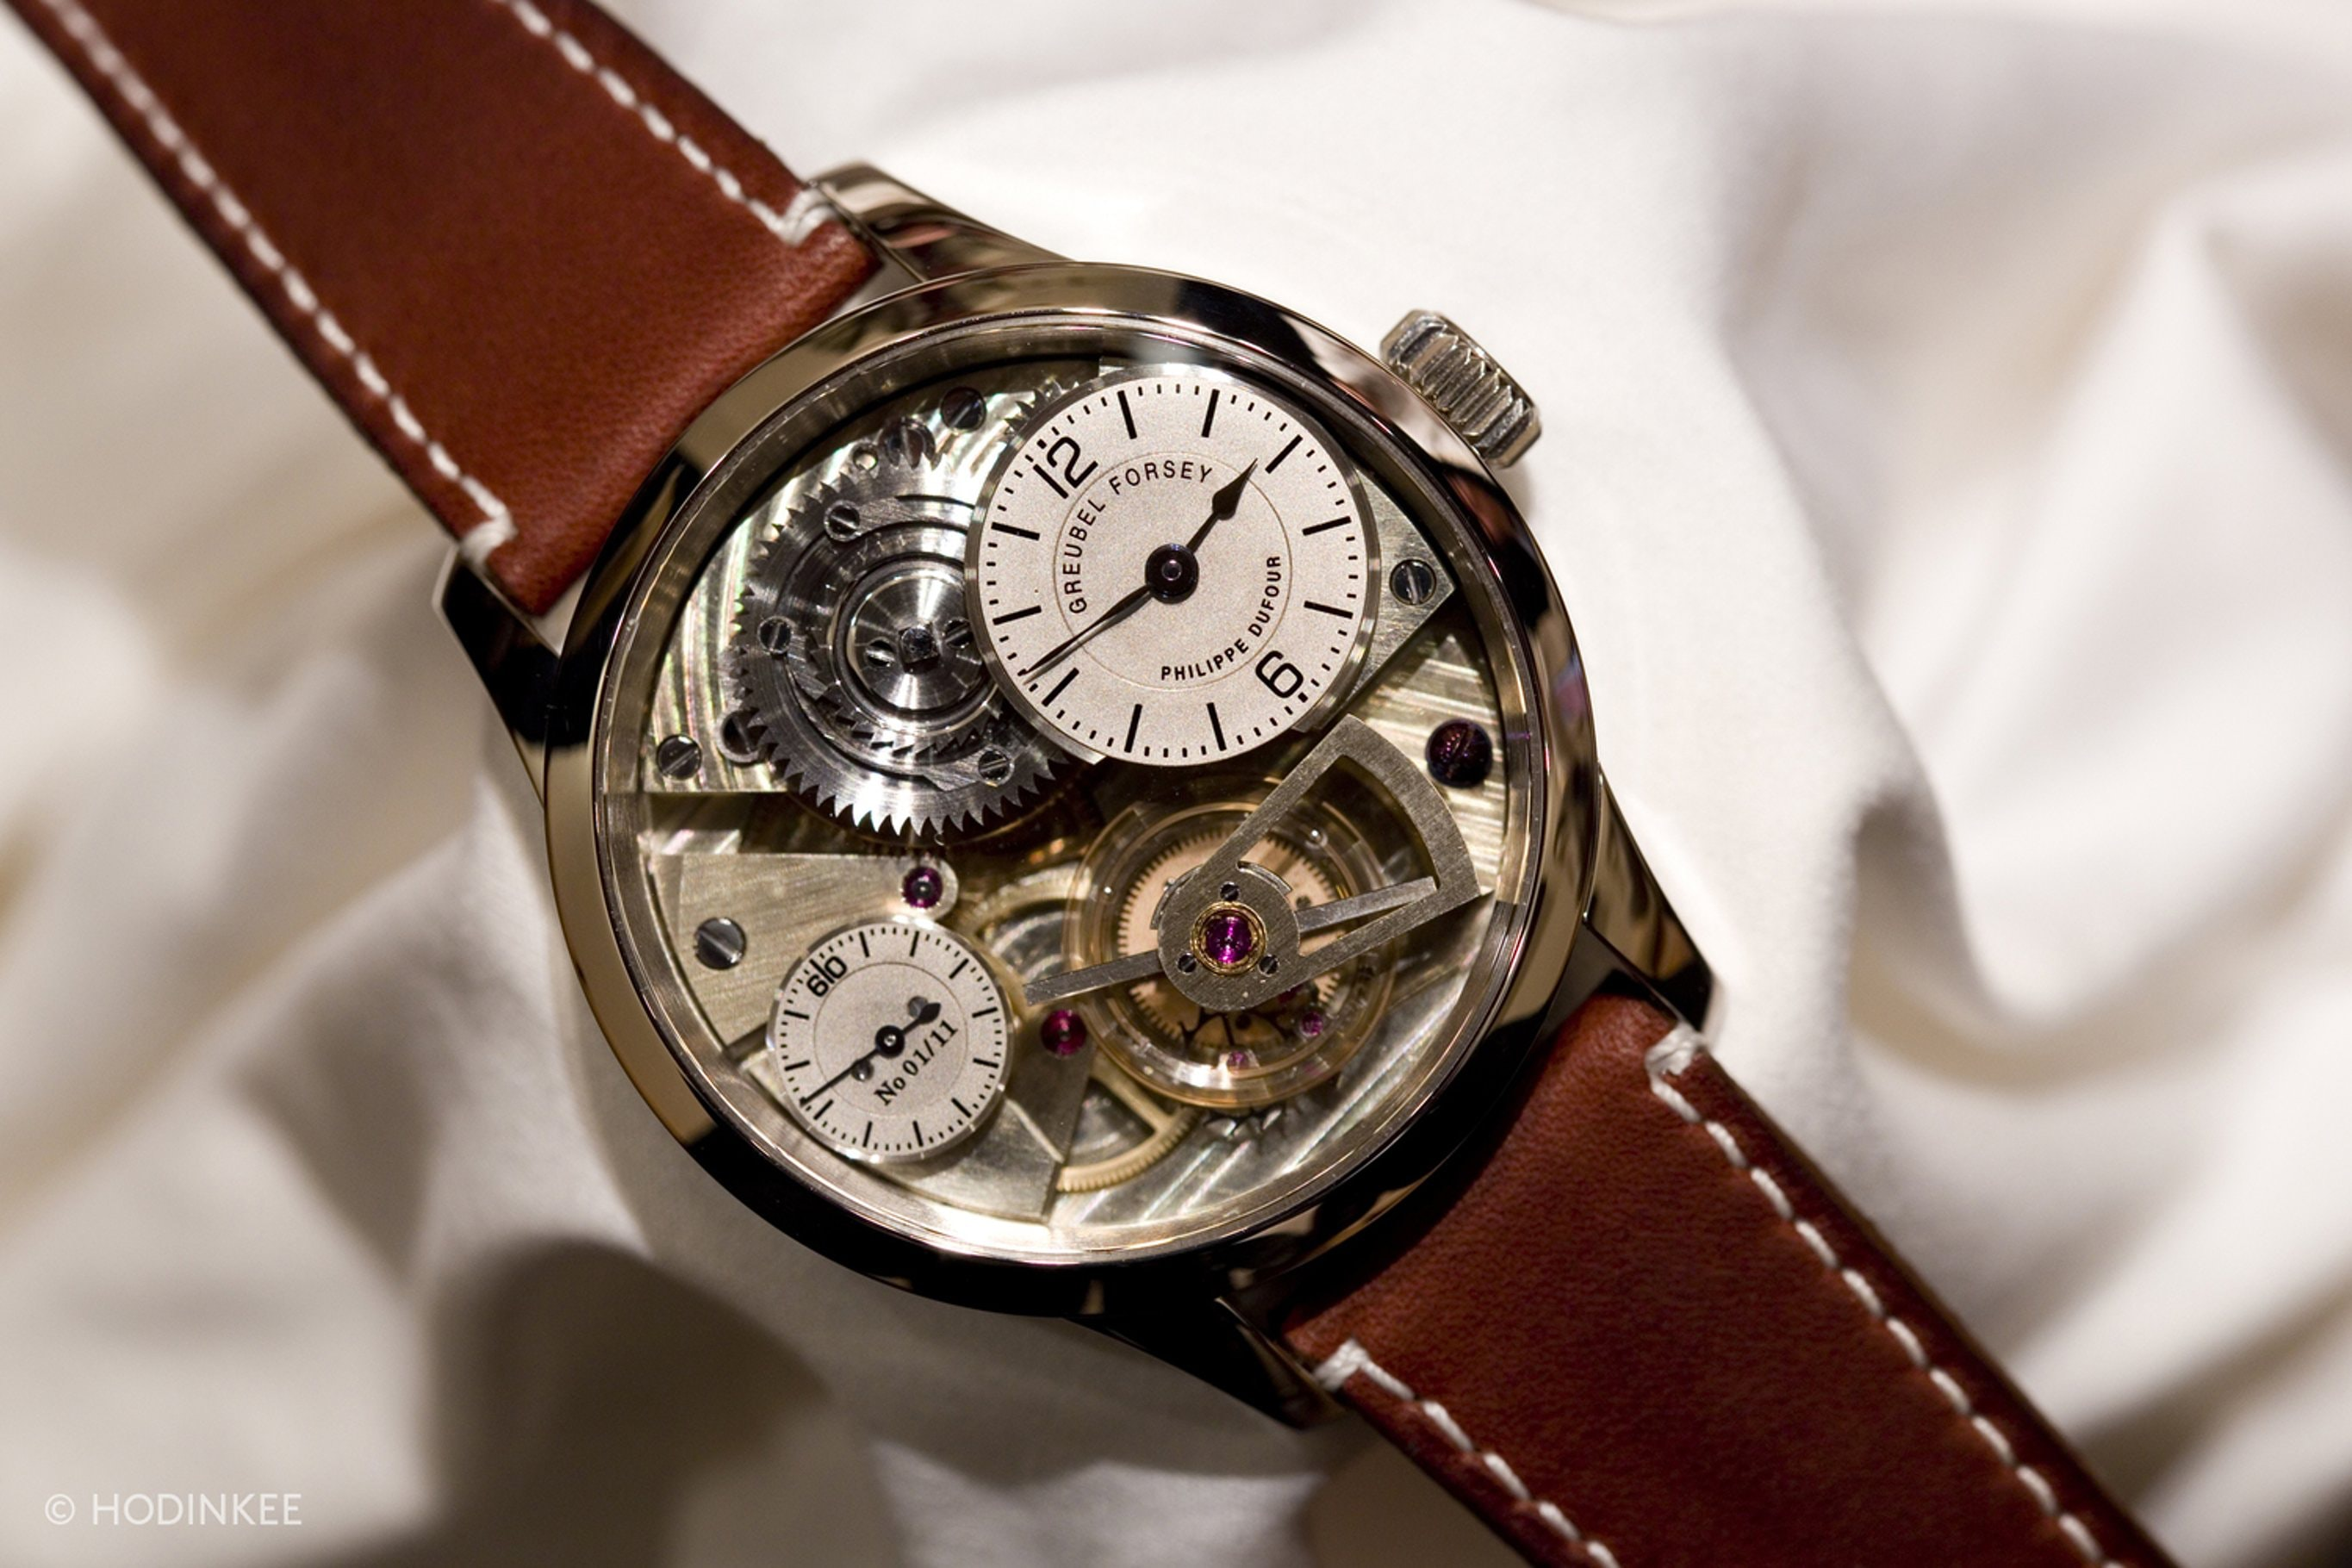 Naissance d'une Montre Prototype From Greubel Forsey, Philippe Dufour, And Michel Boulanger Sells For $1.46 Million At Christie's Hong Kong Naissance d'une Montre Prototype From Greubel Forsey, Philippe Dufour, And Michel Boulanger Sells For $1.46 Million At Christie's Hong Kong  img